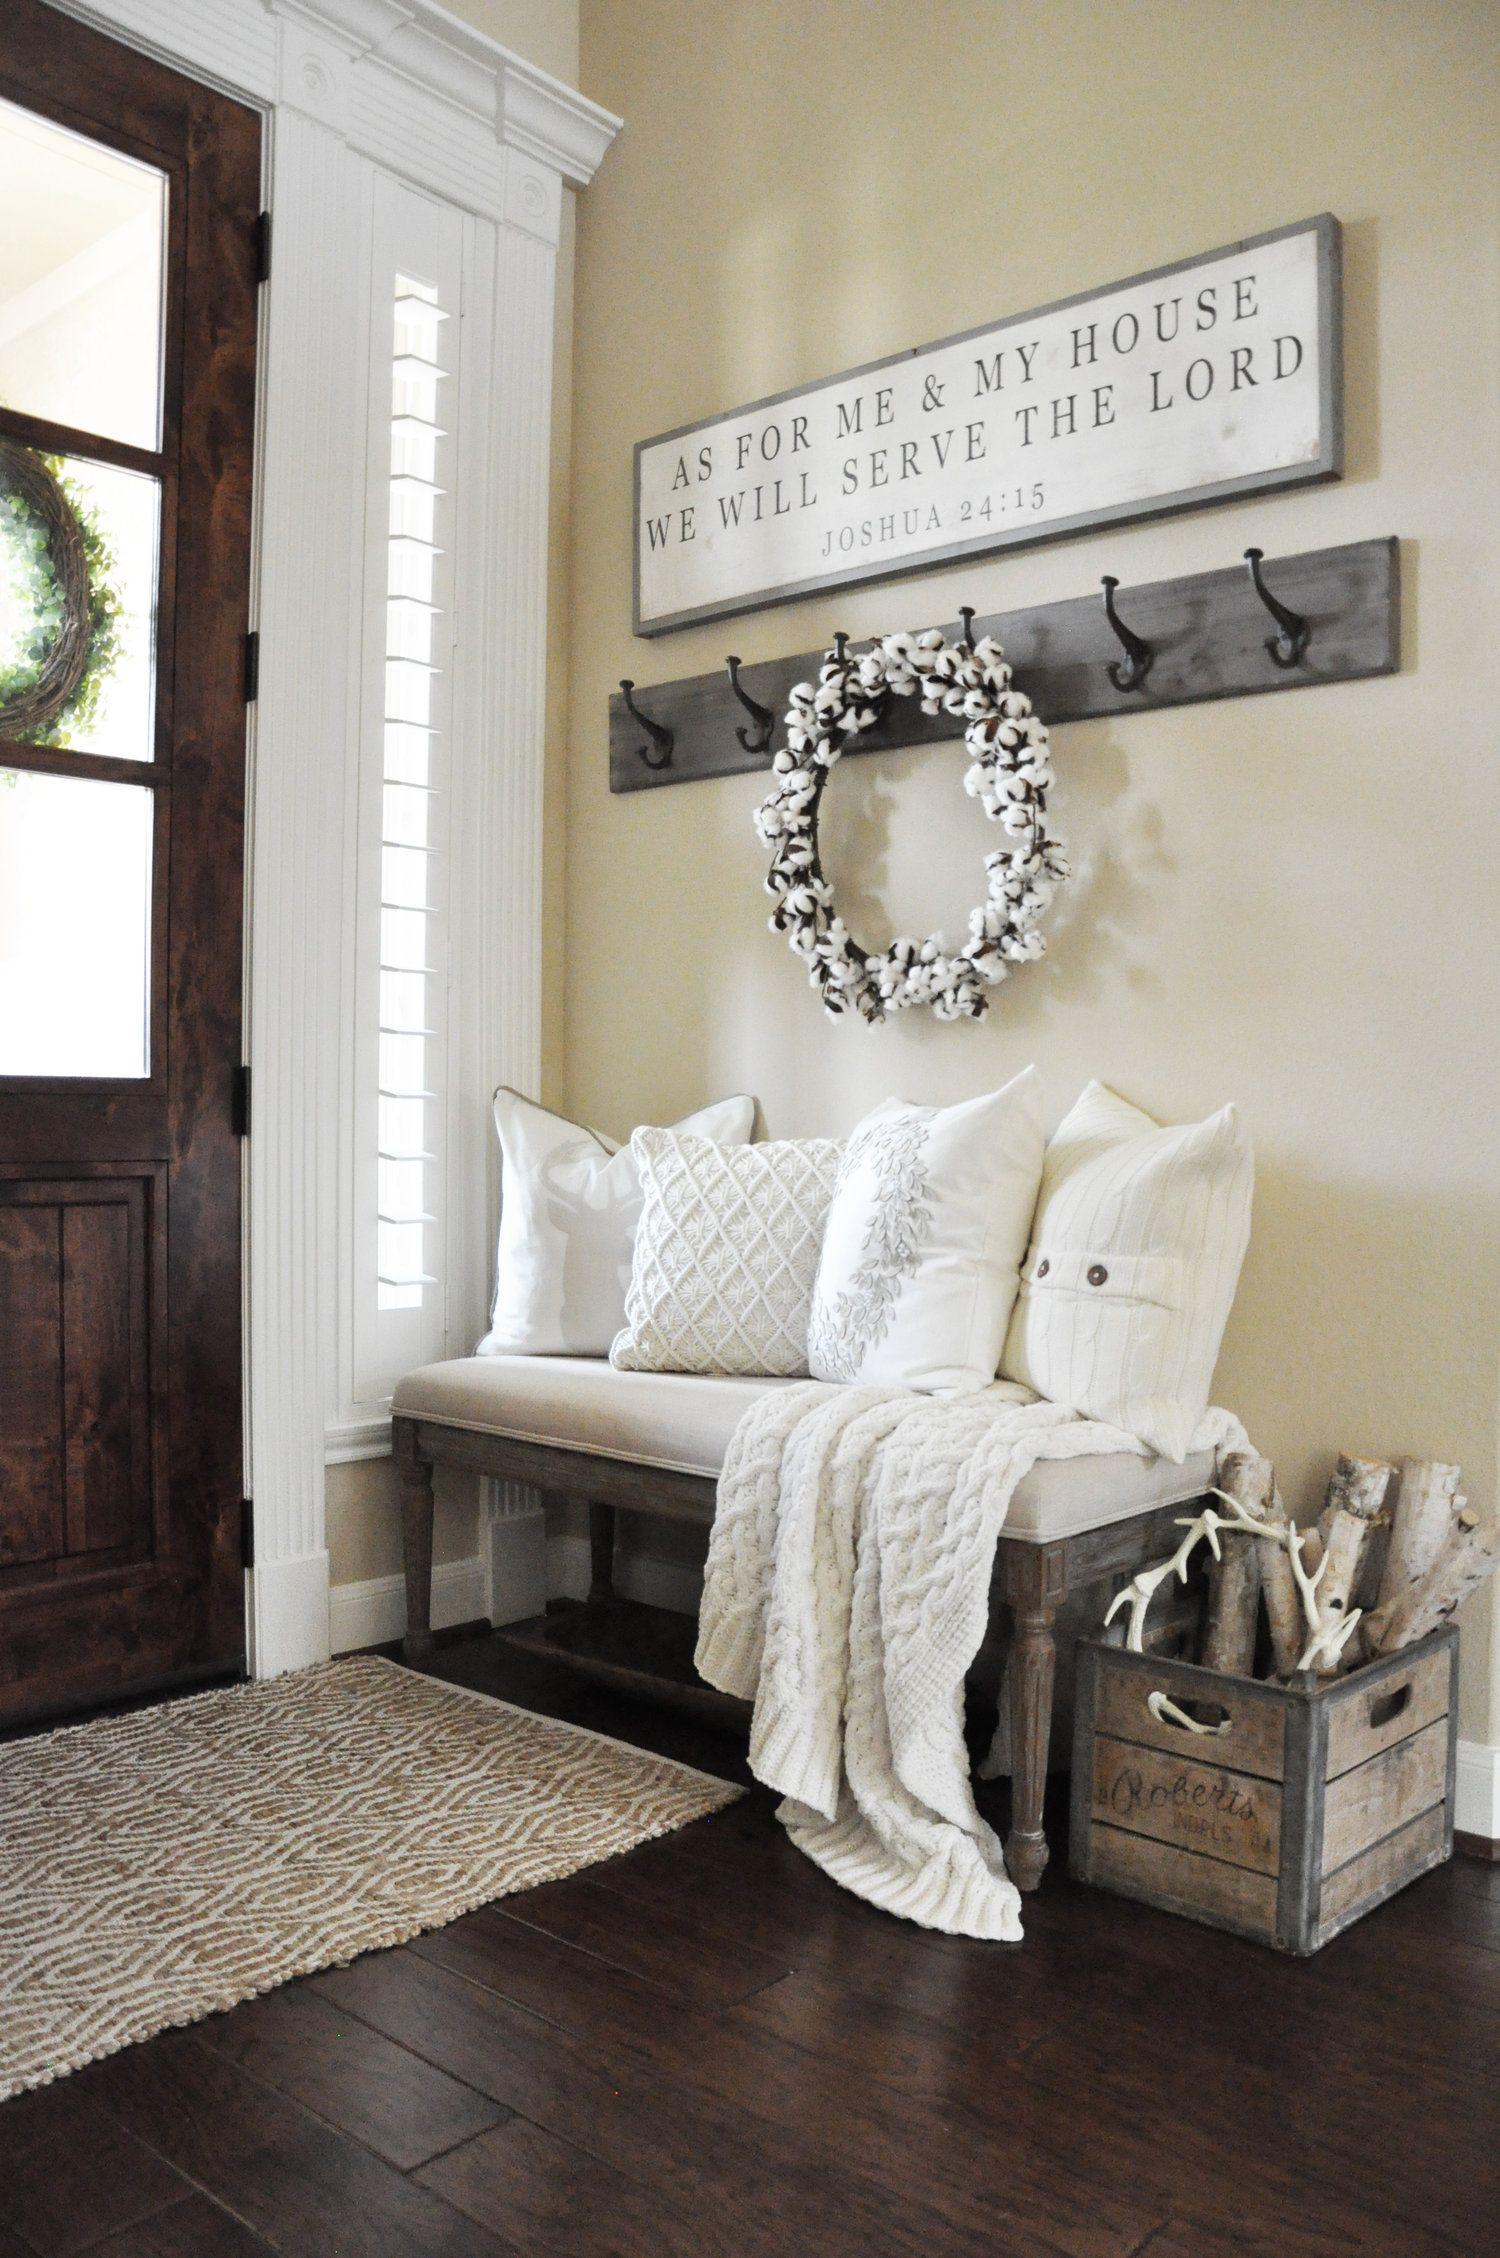 Cozying up your home for winter dreaming of our family home